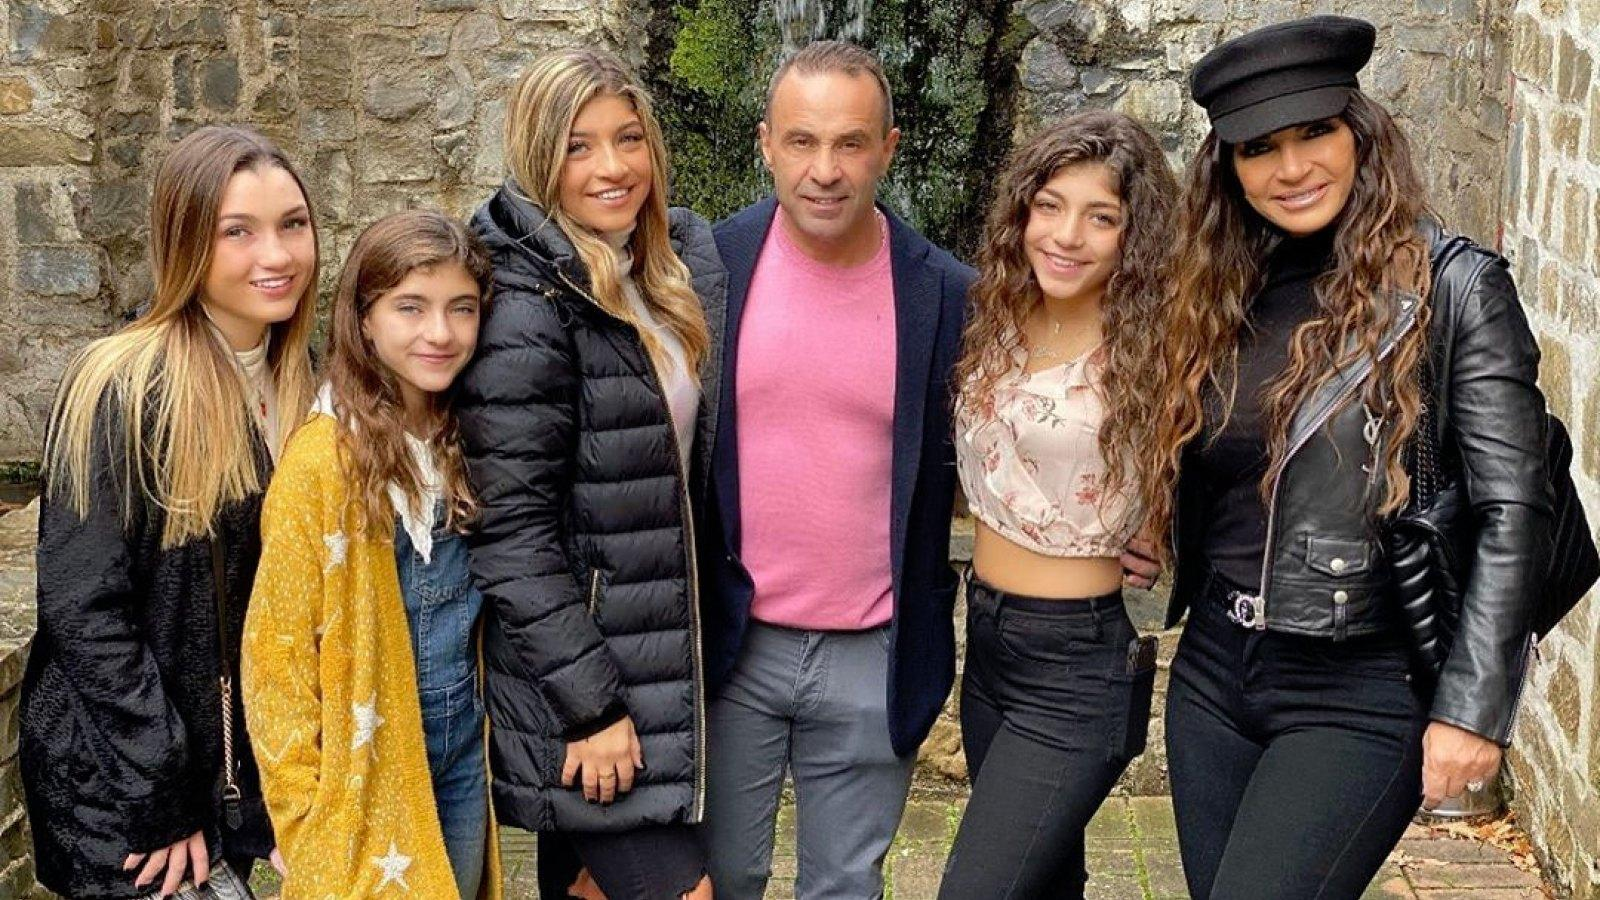 Teresa And Joe Giudice's Daughters Looking Forward To Visiting Their Father In Italy Later This Summer